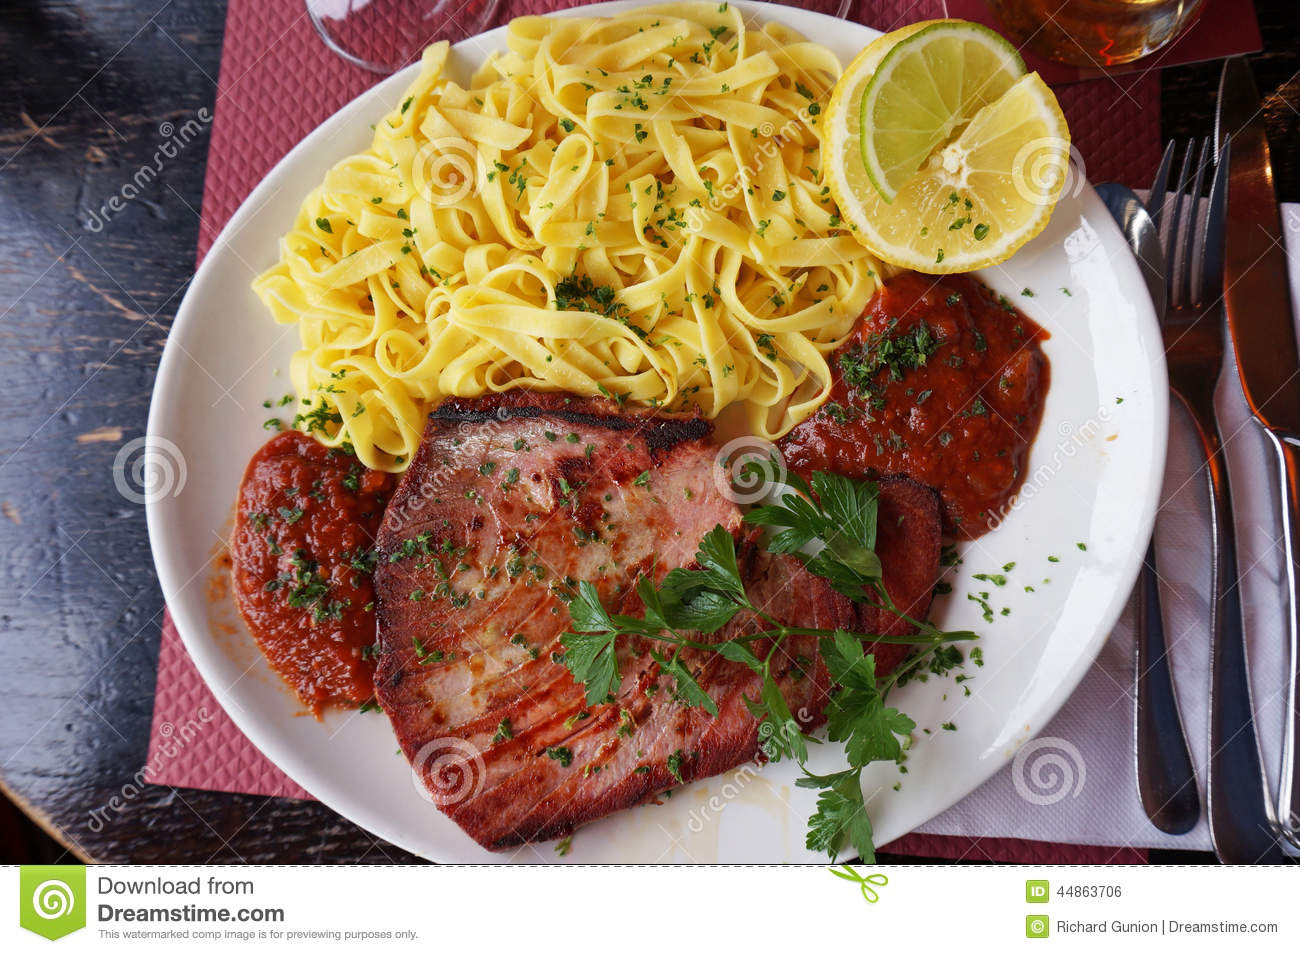 Tuna with pasta and sauce stock photo image of paris for Restaurant cuisine francaise paris